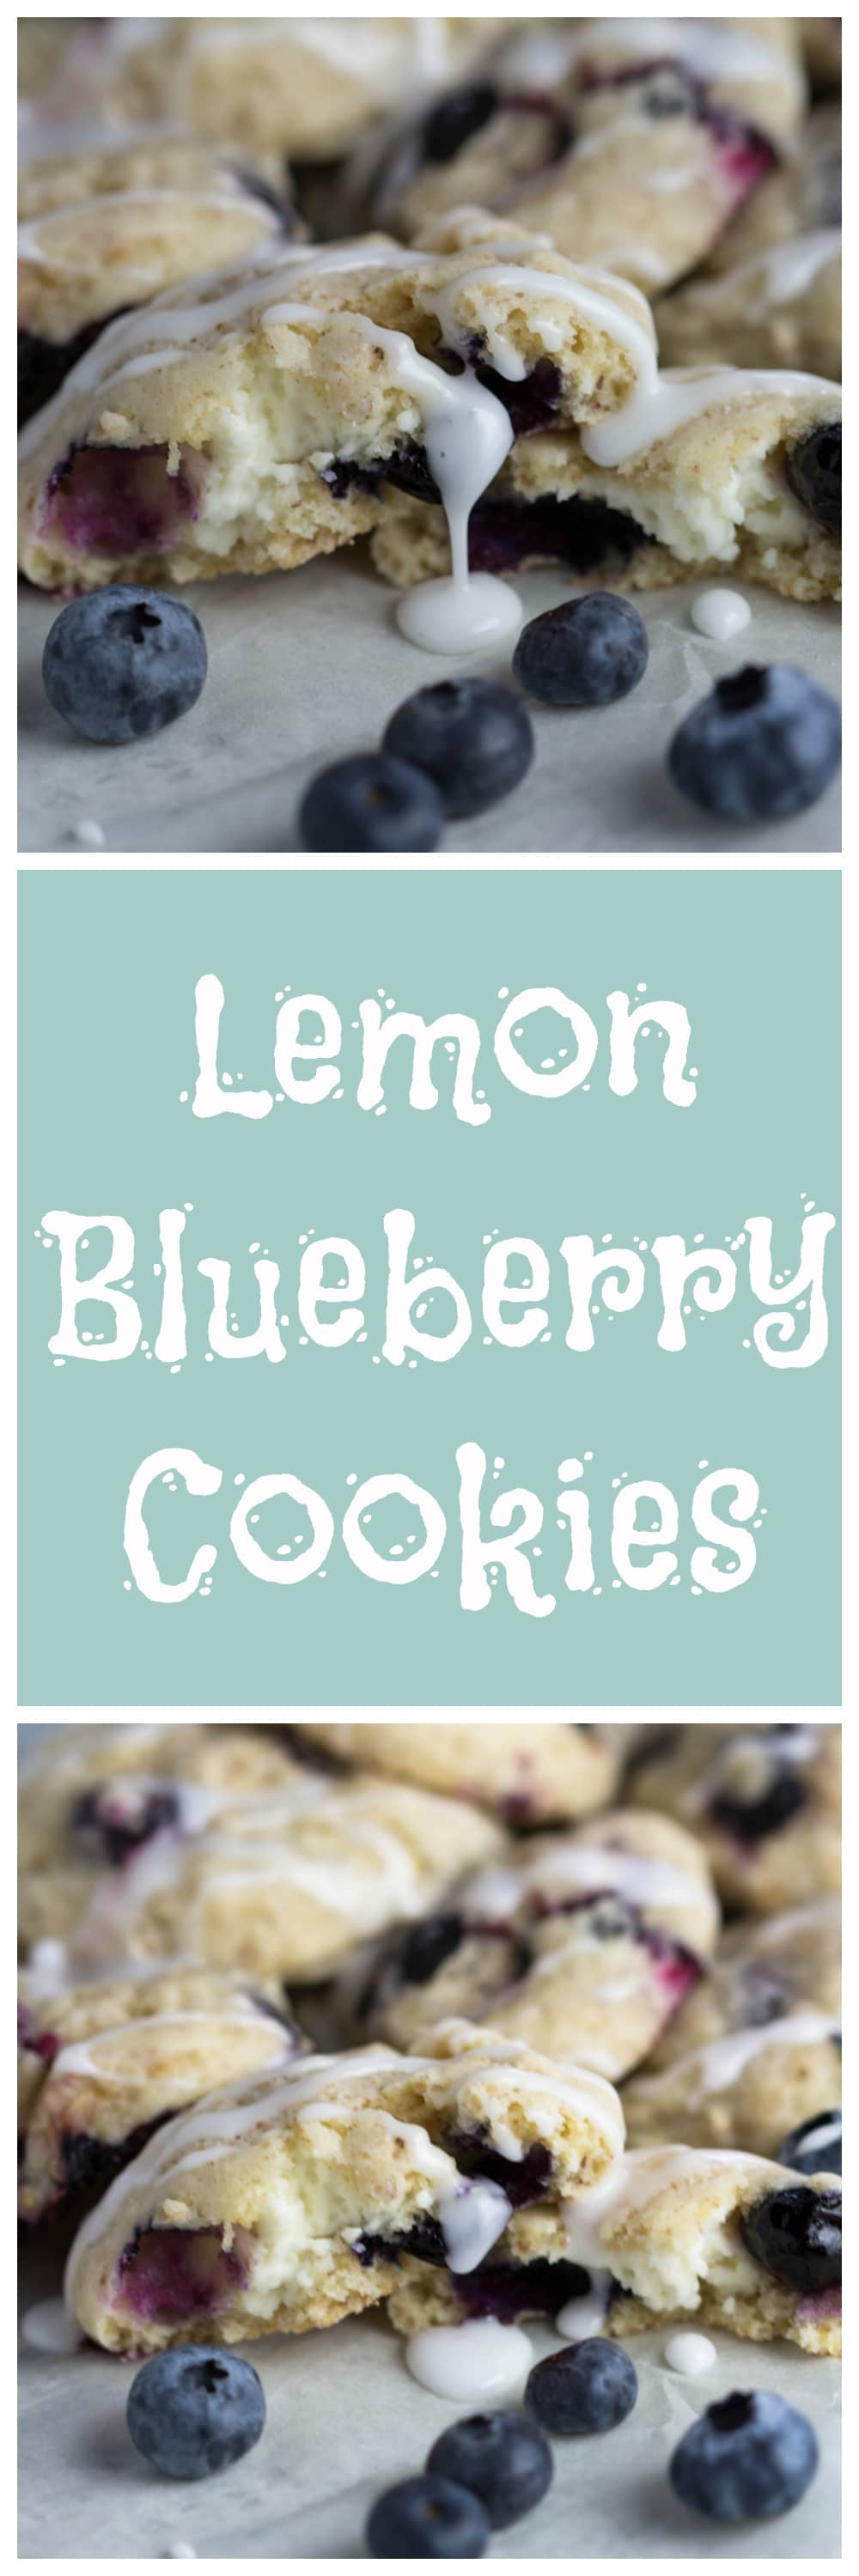 Lemon Blueberry Cookies - Krolls Korner